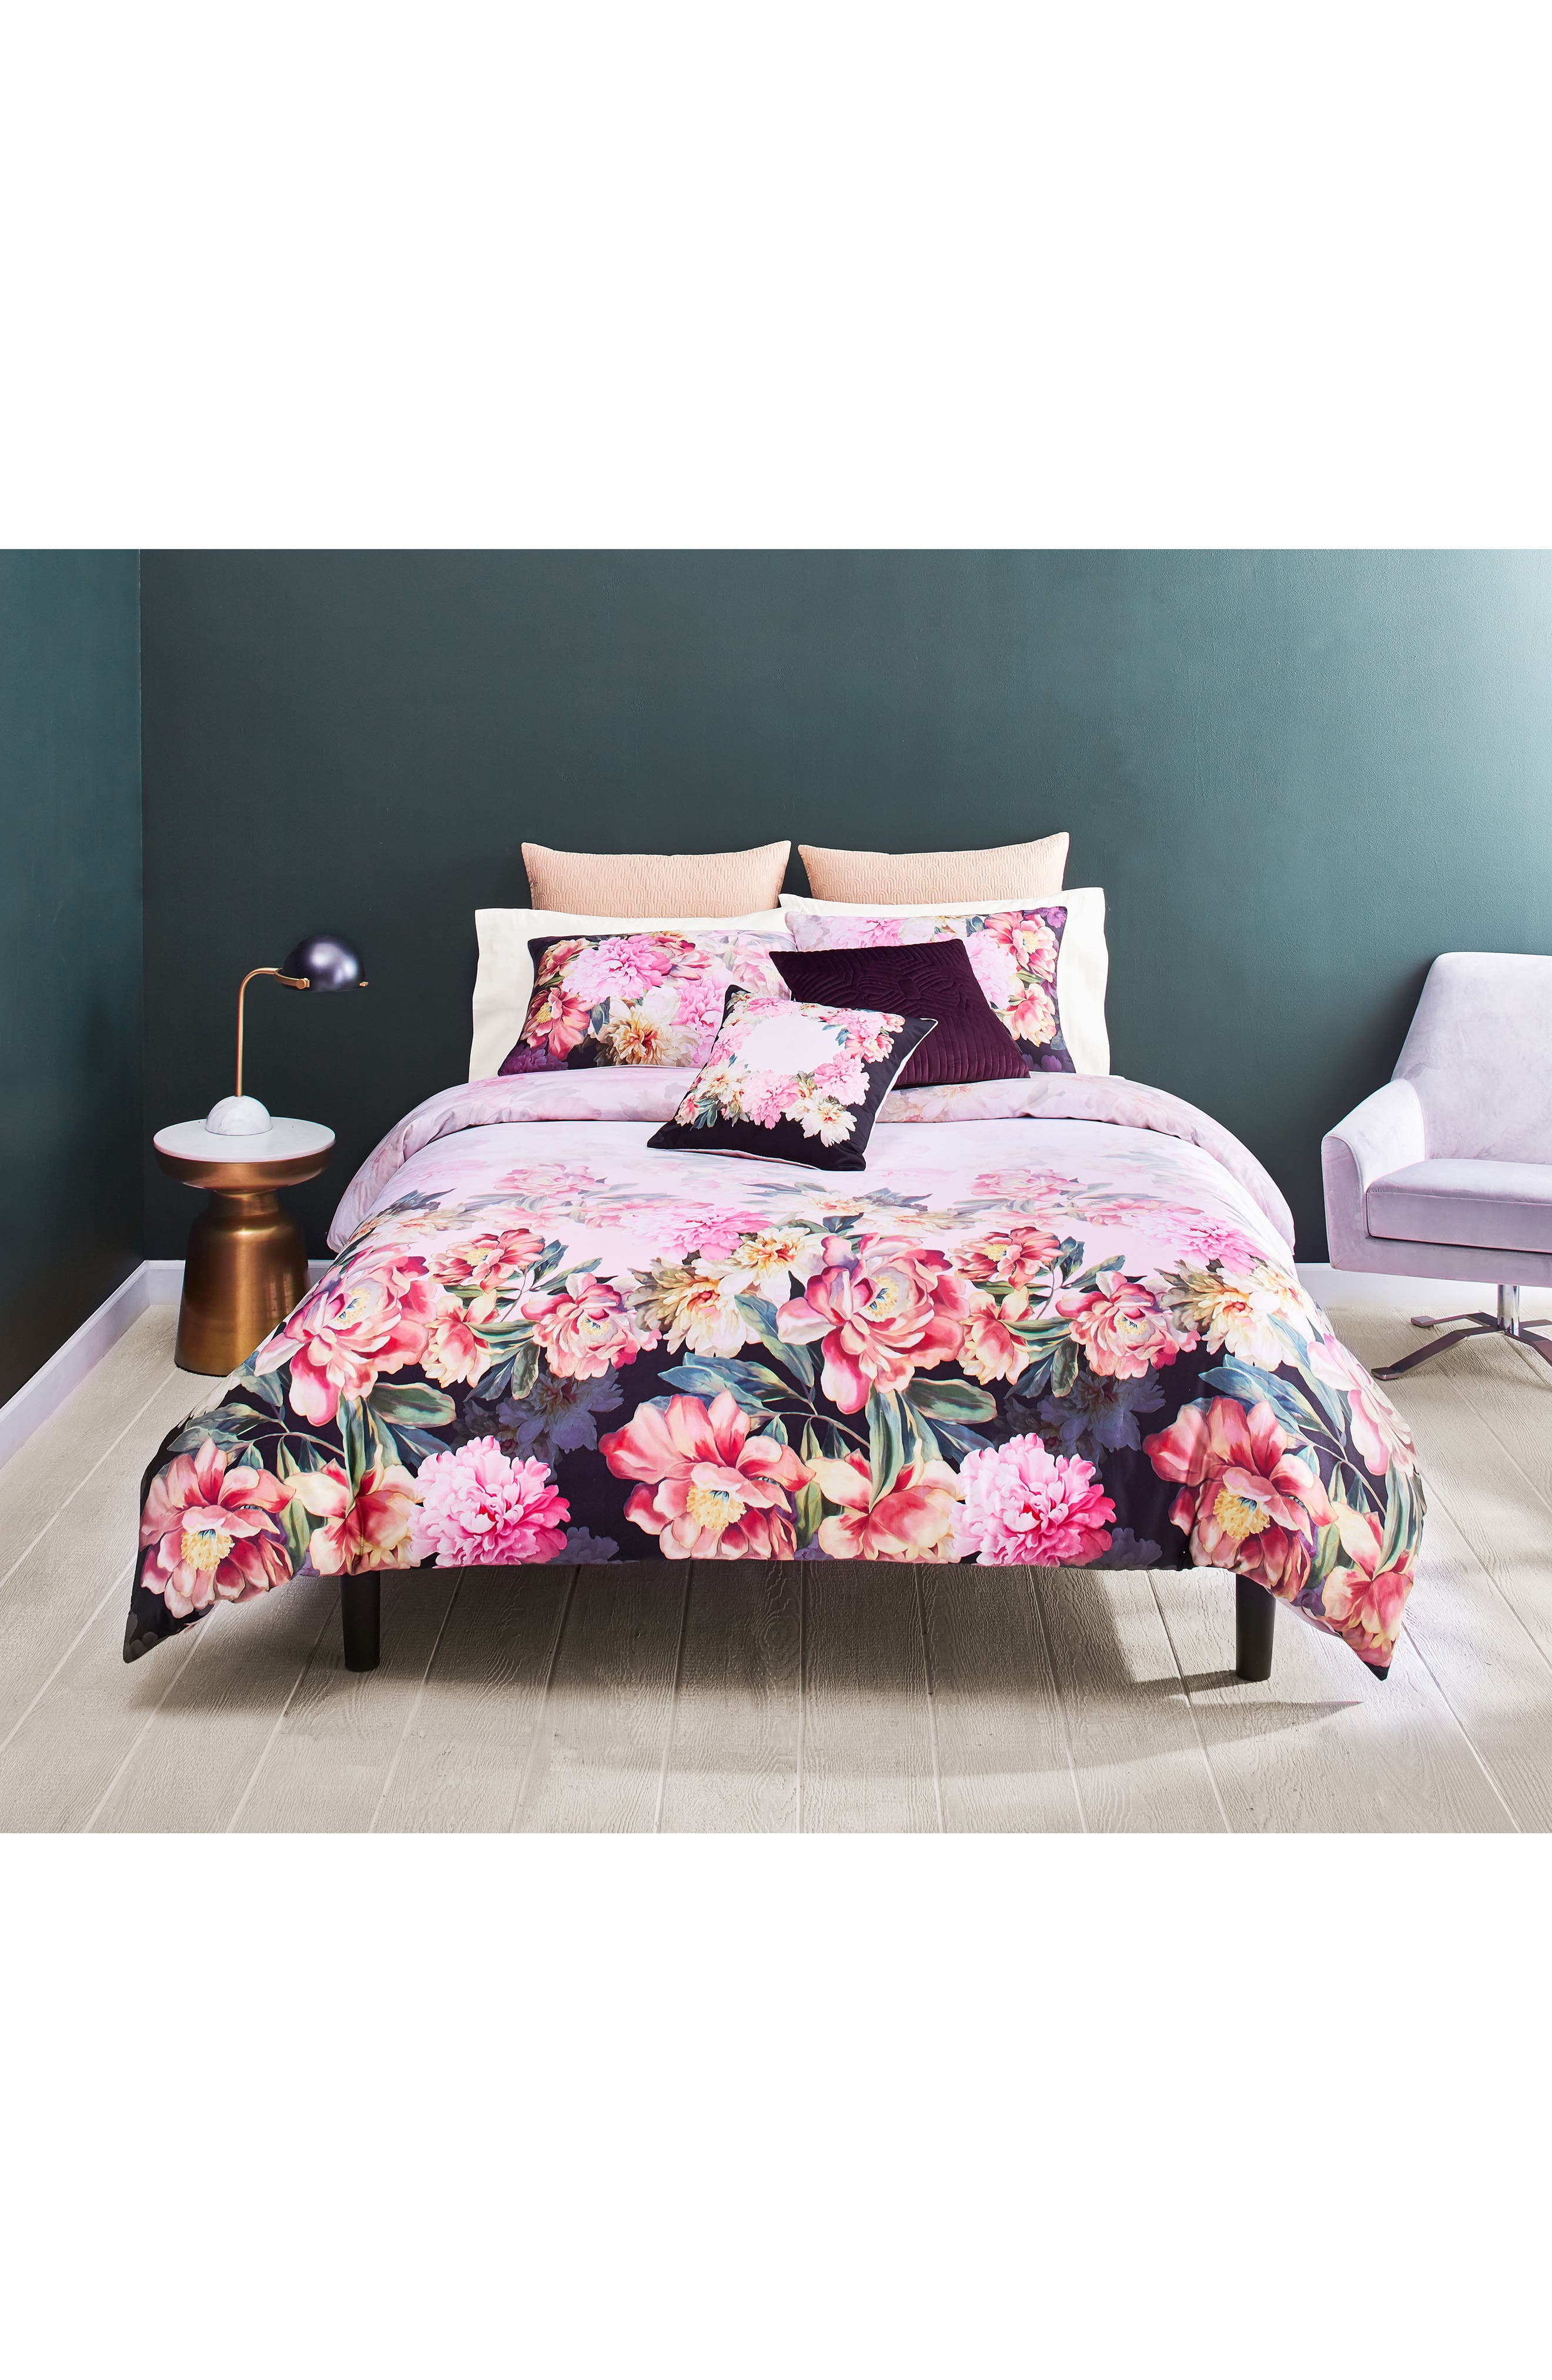 Painted Posie Duvet Cover & Sham Set,                             Main thumbnail 1, color,                             650